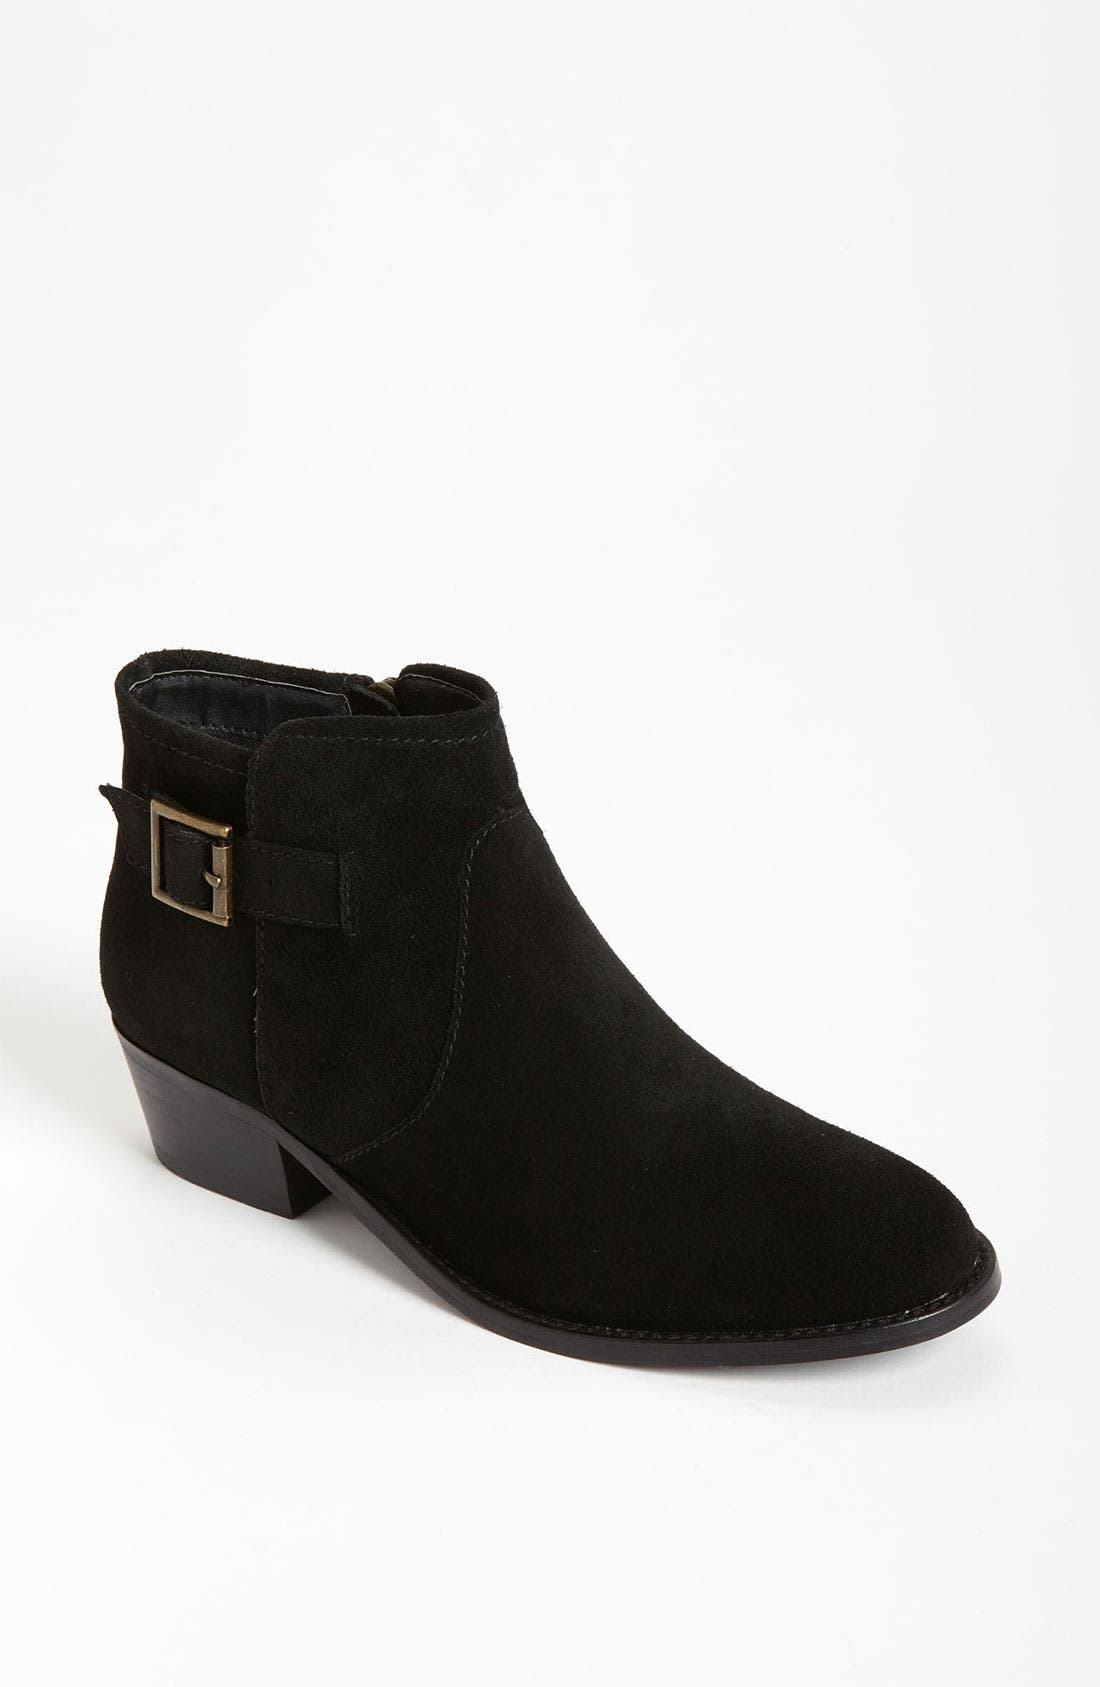 Alternate Image 1 Selected - Steve Madden 'Prizzze' Boot